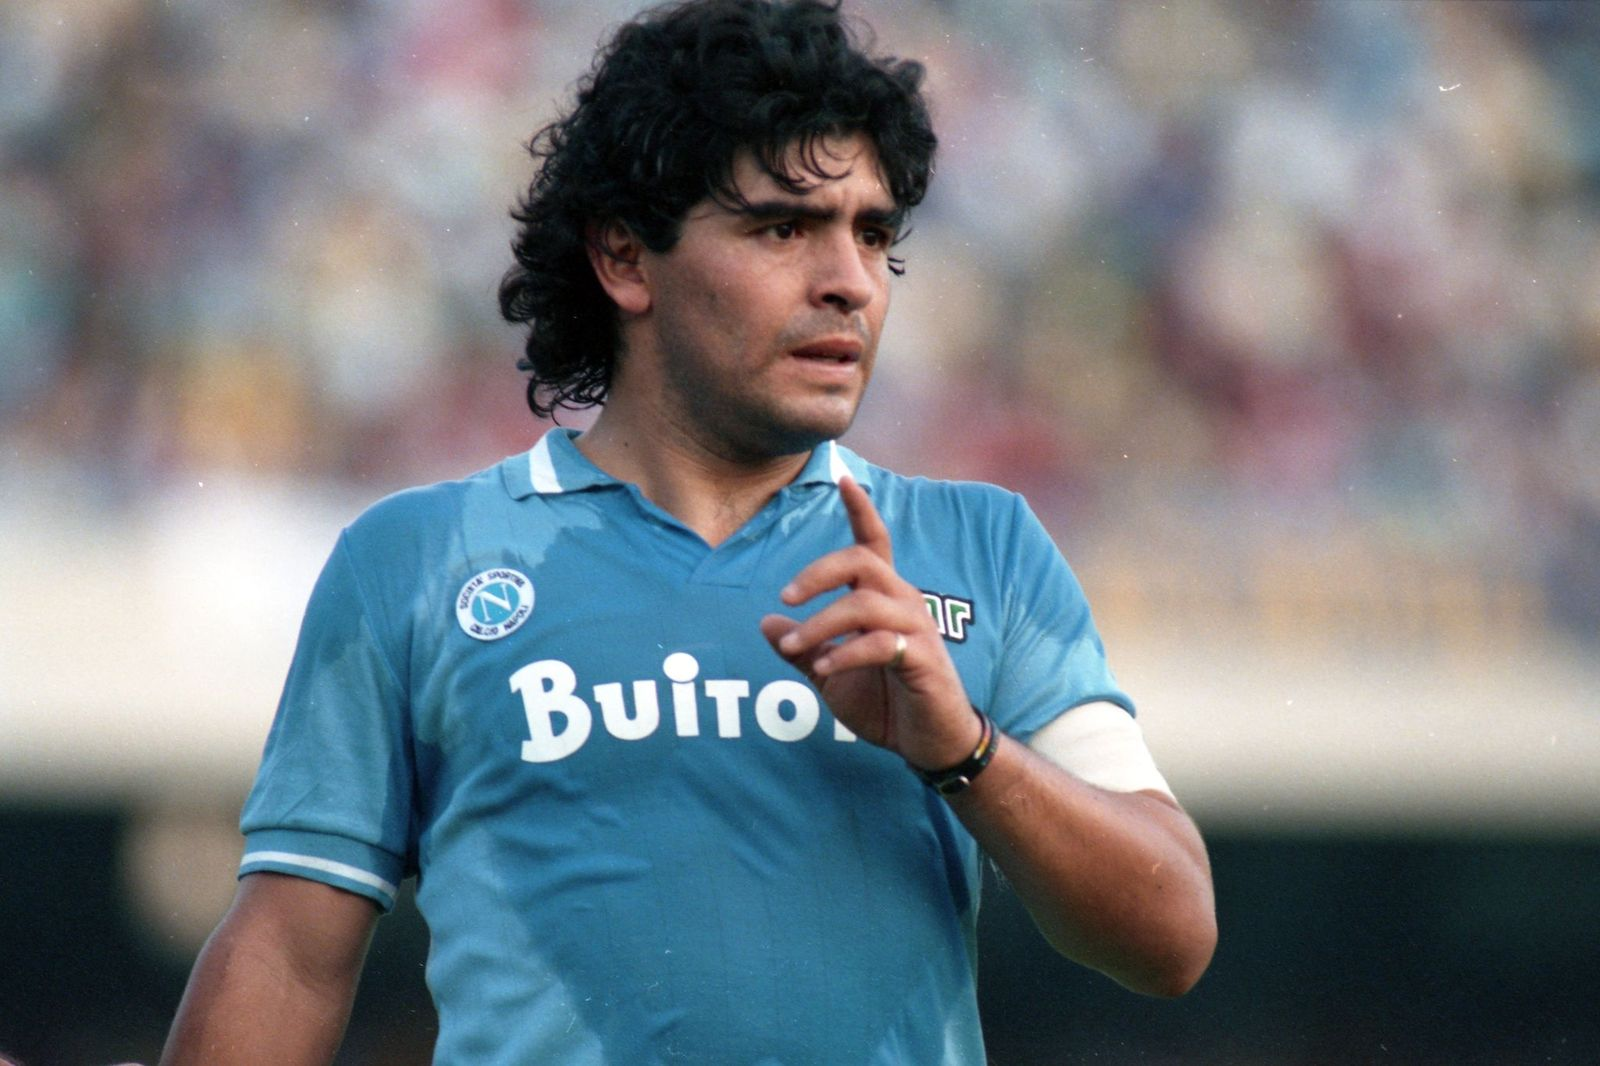 Diego Maradona during the Serie A match between Napoli and Atalanta on October 19, 1986, in Naples, Italy | Photo: Etsuo Hara/Getty Images